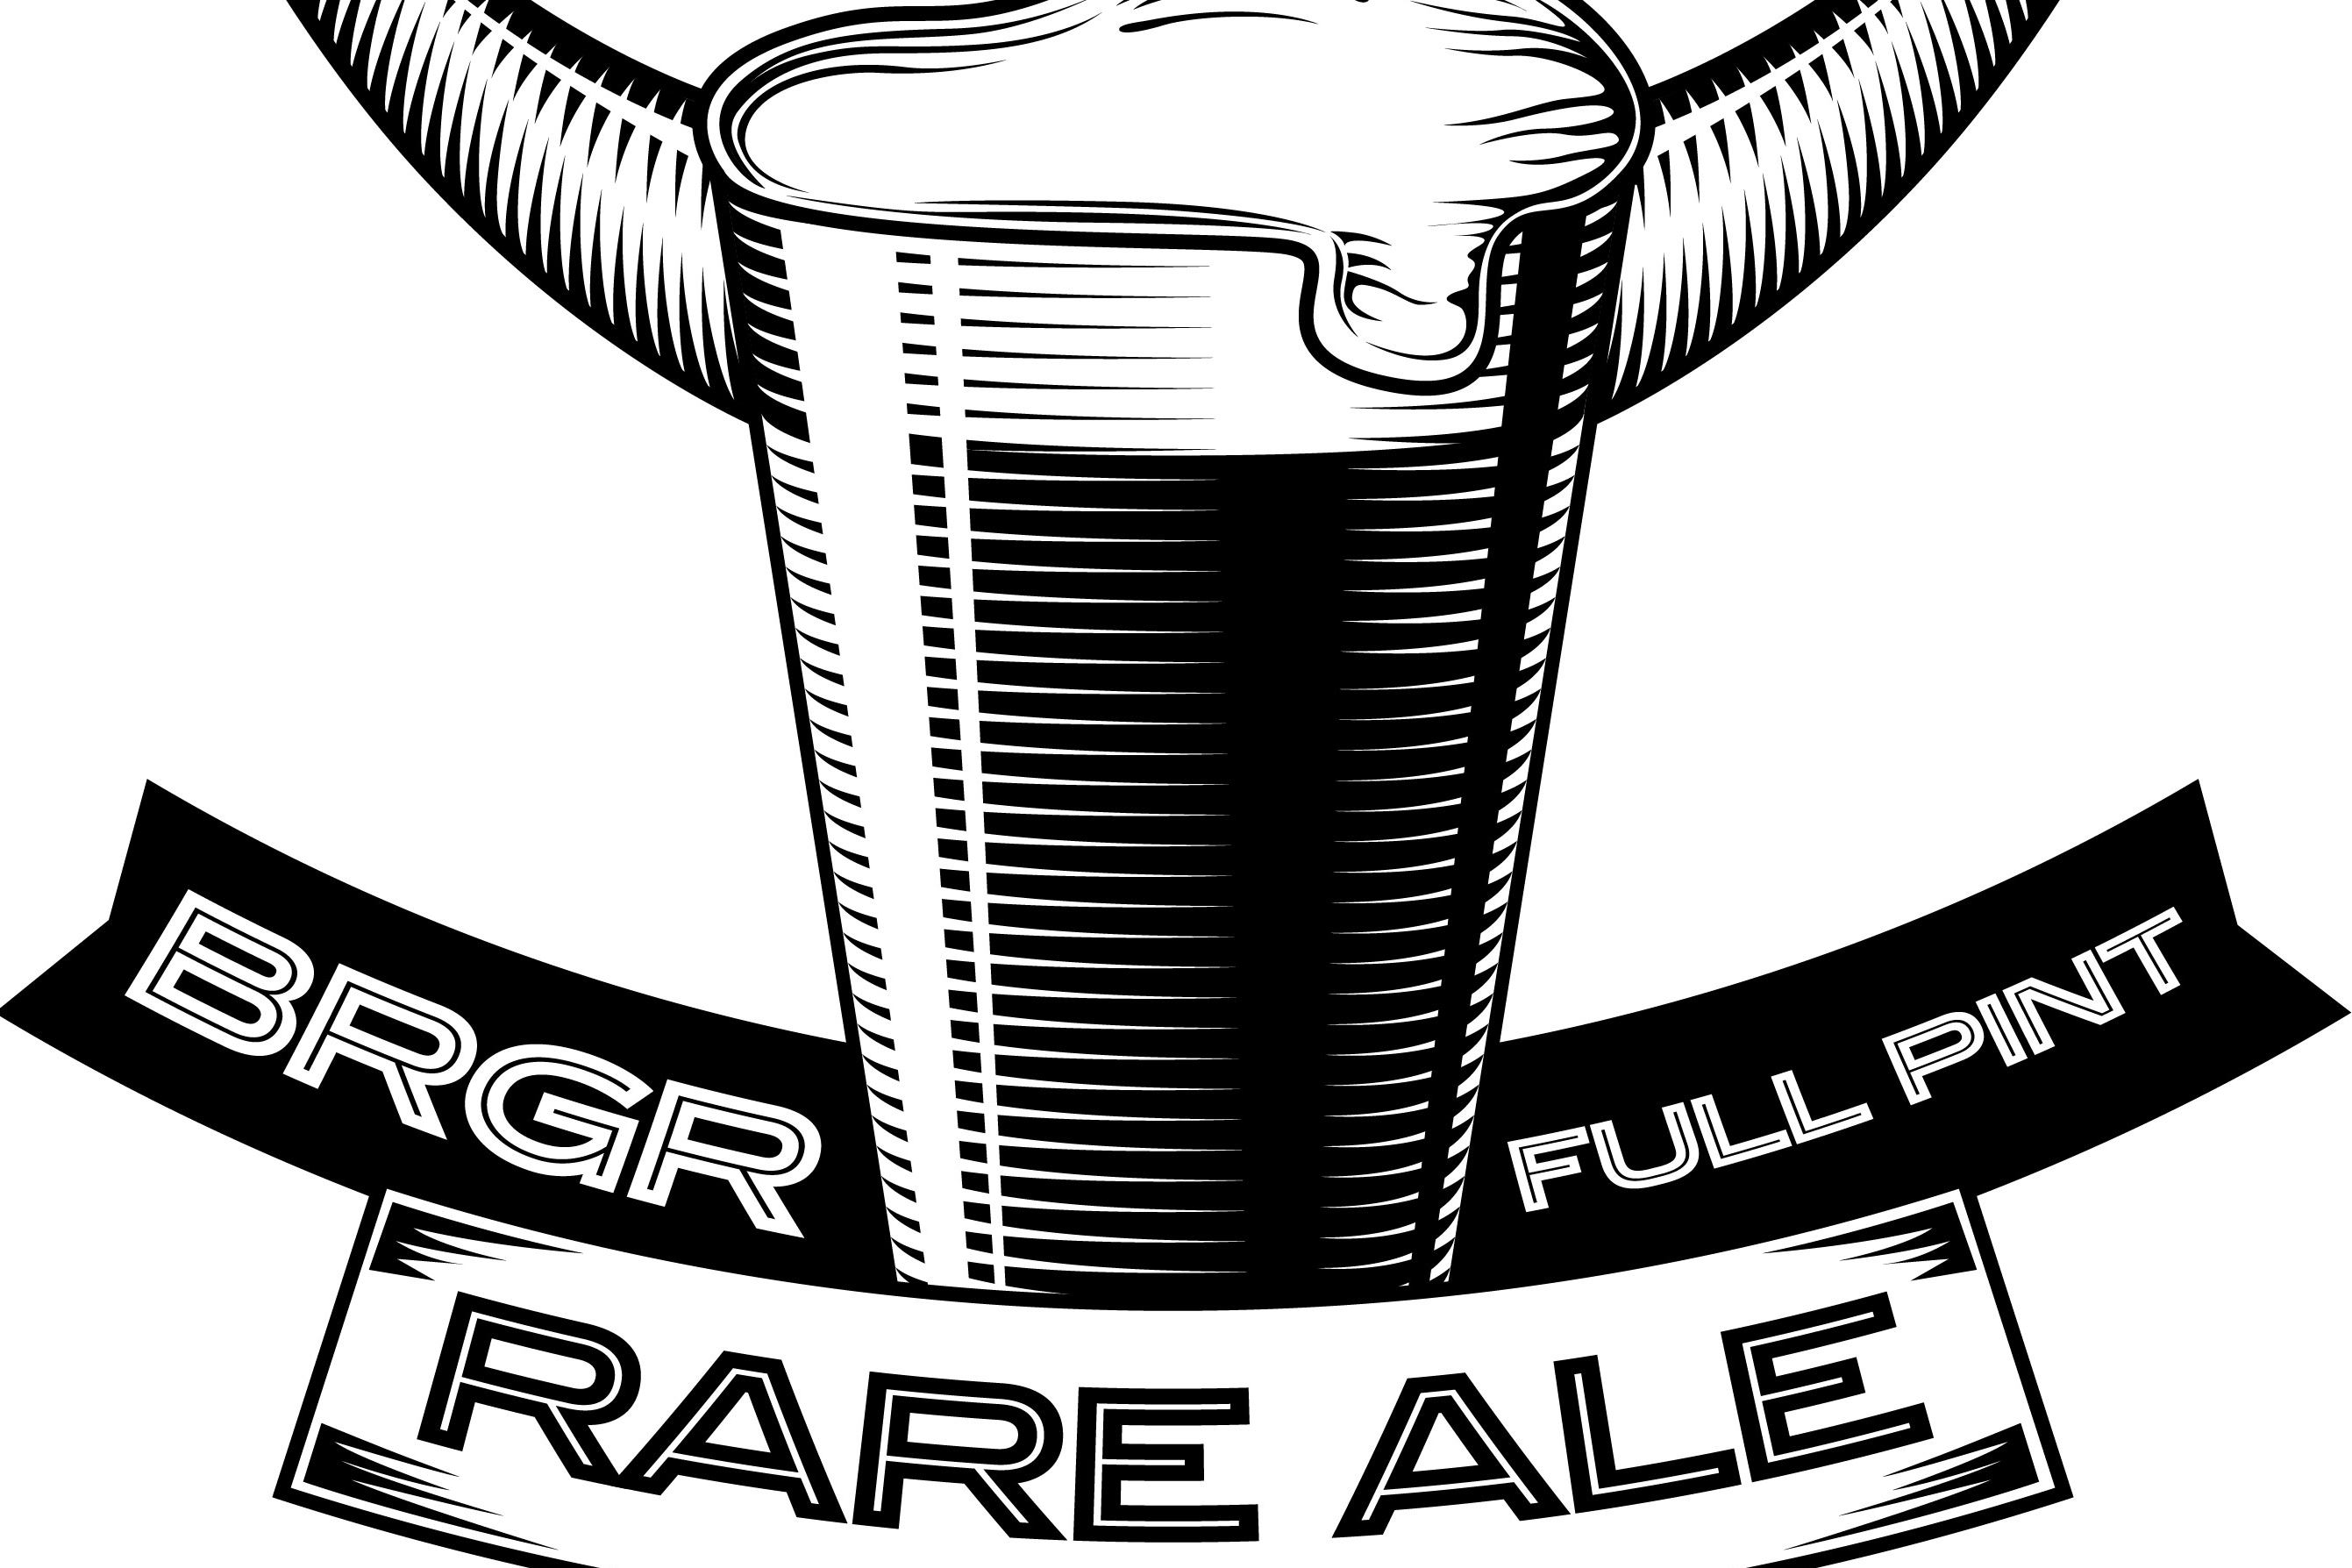 BRGR_RARE_ALE_woodcut_logo-1 The logo for Rare Ale, which is made exclusively for area BRGR outlets by Full Pint Brewing Co.